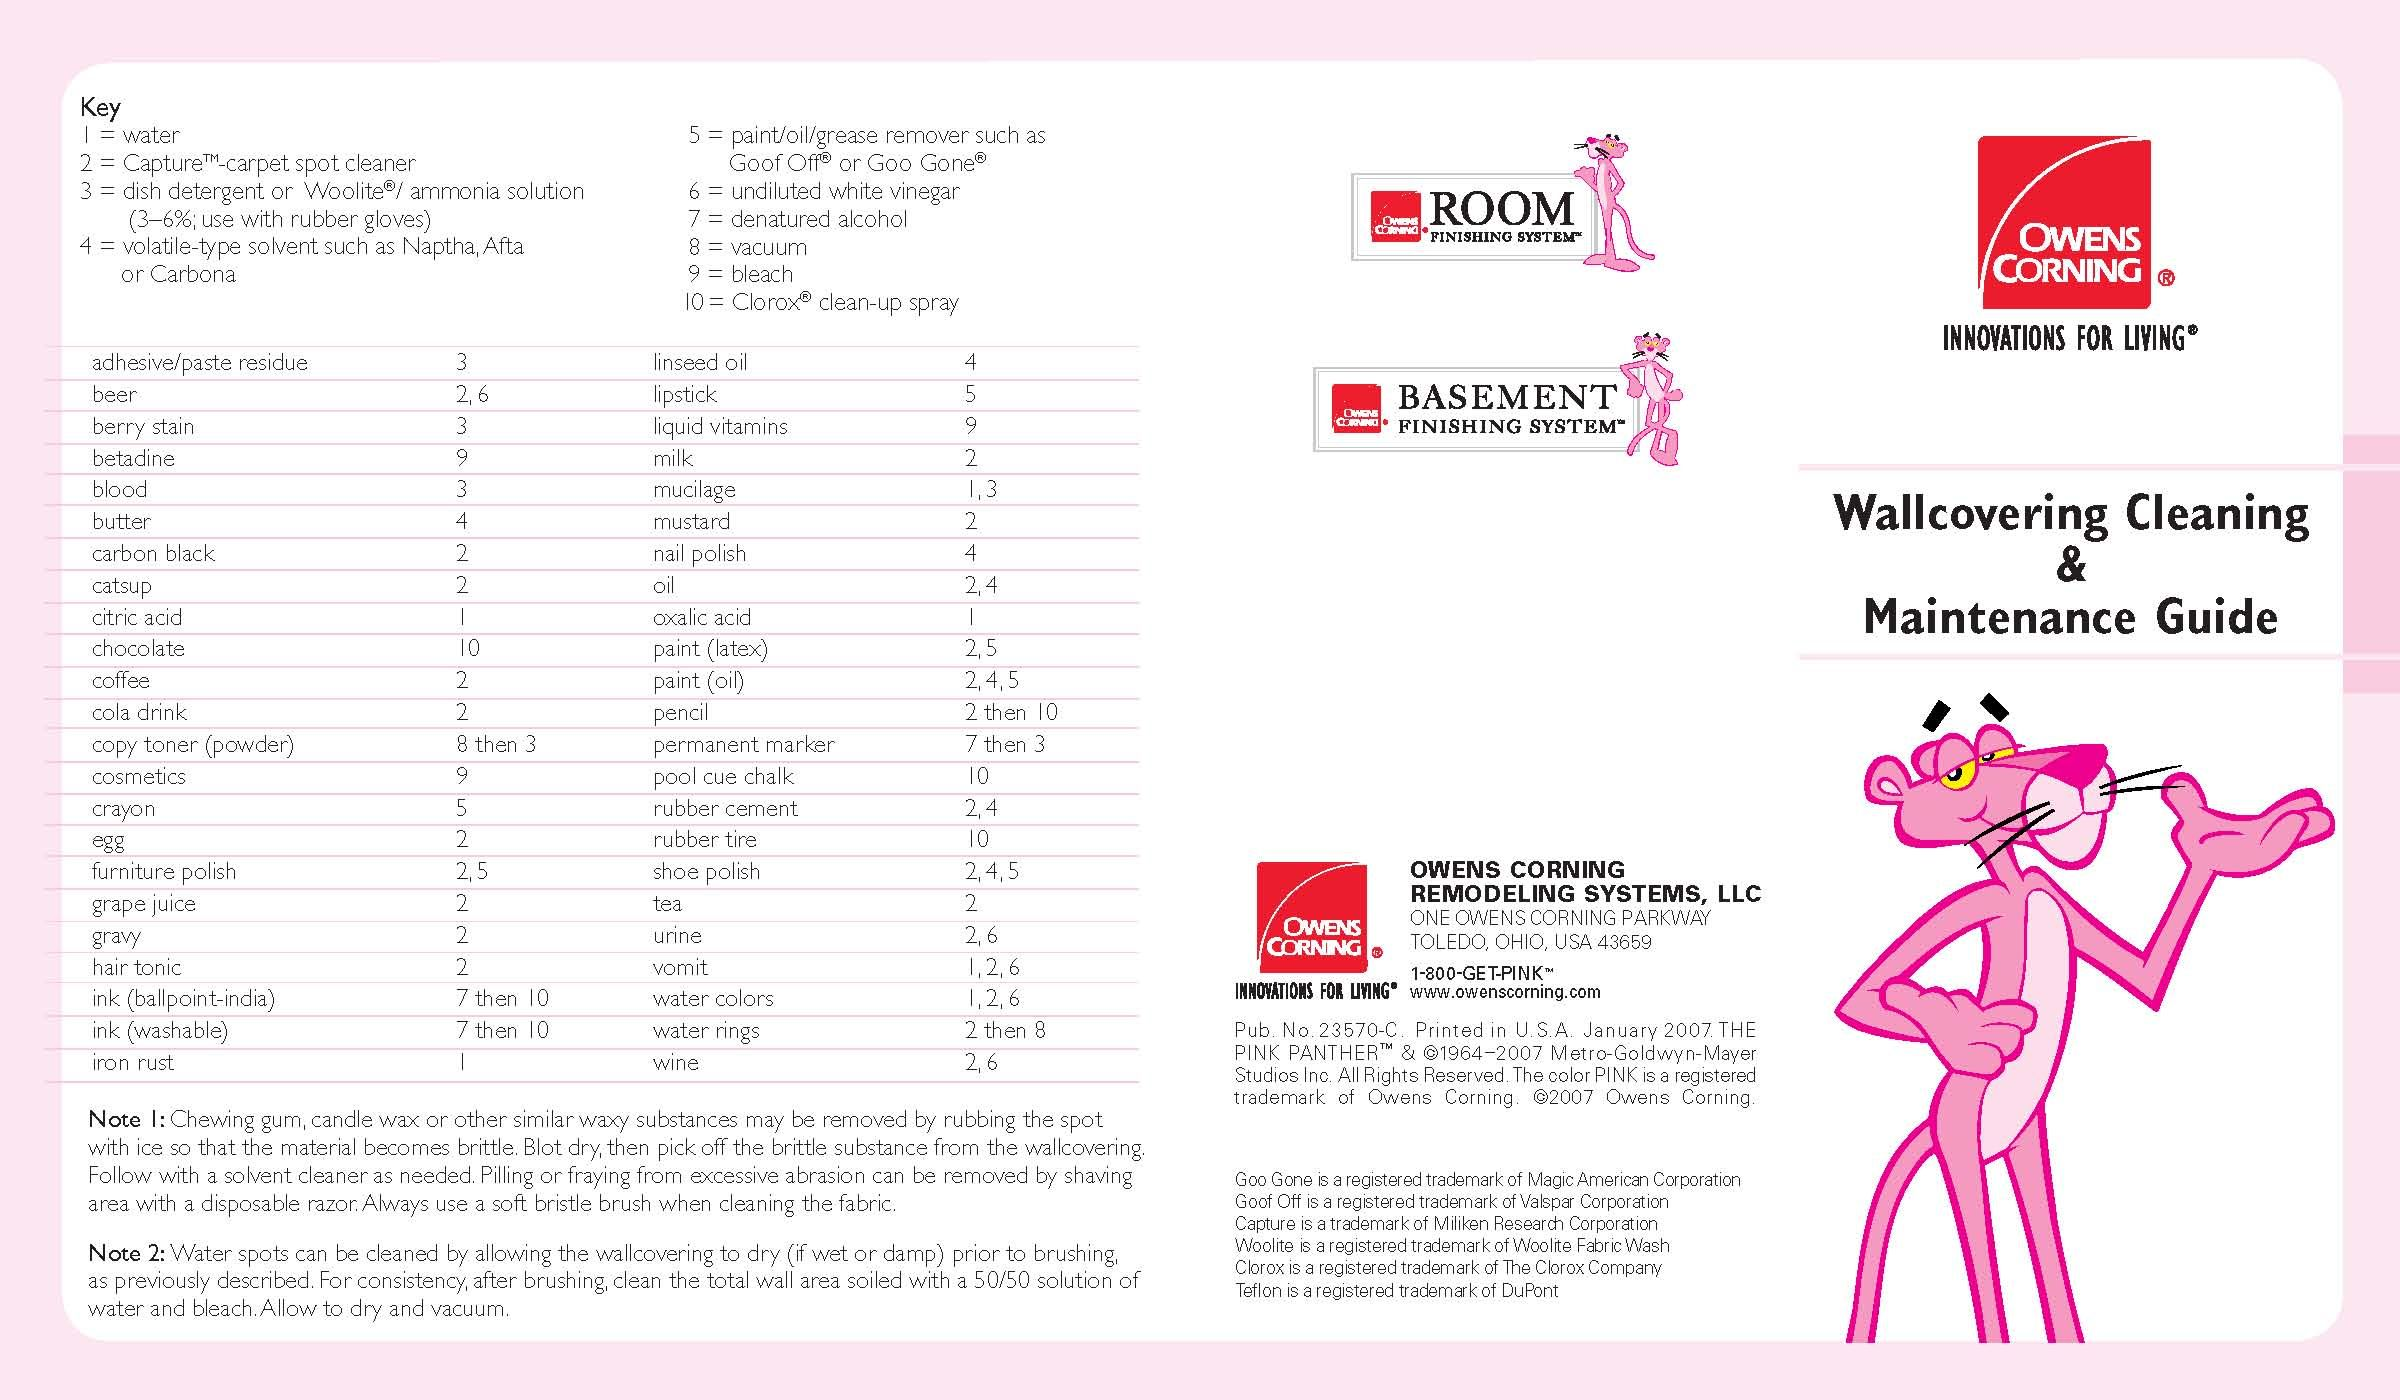 Owens Corning Basement Finishing System Wallcovering Cleaning and Maintenance Guide PAGE 1